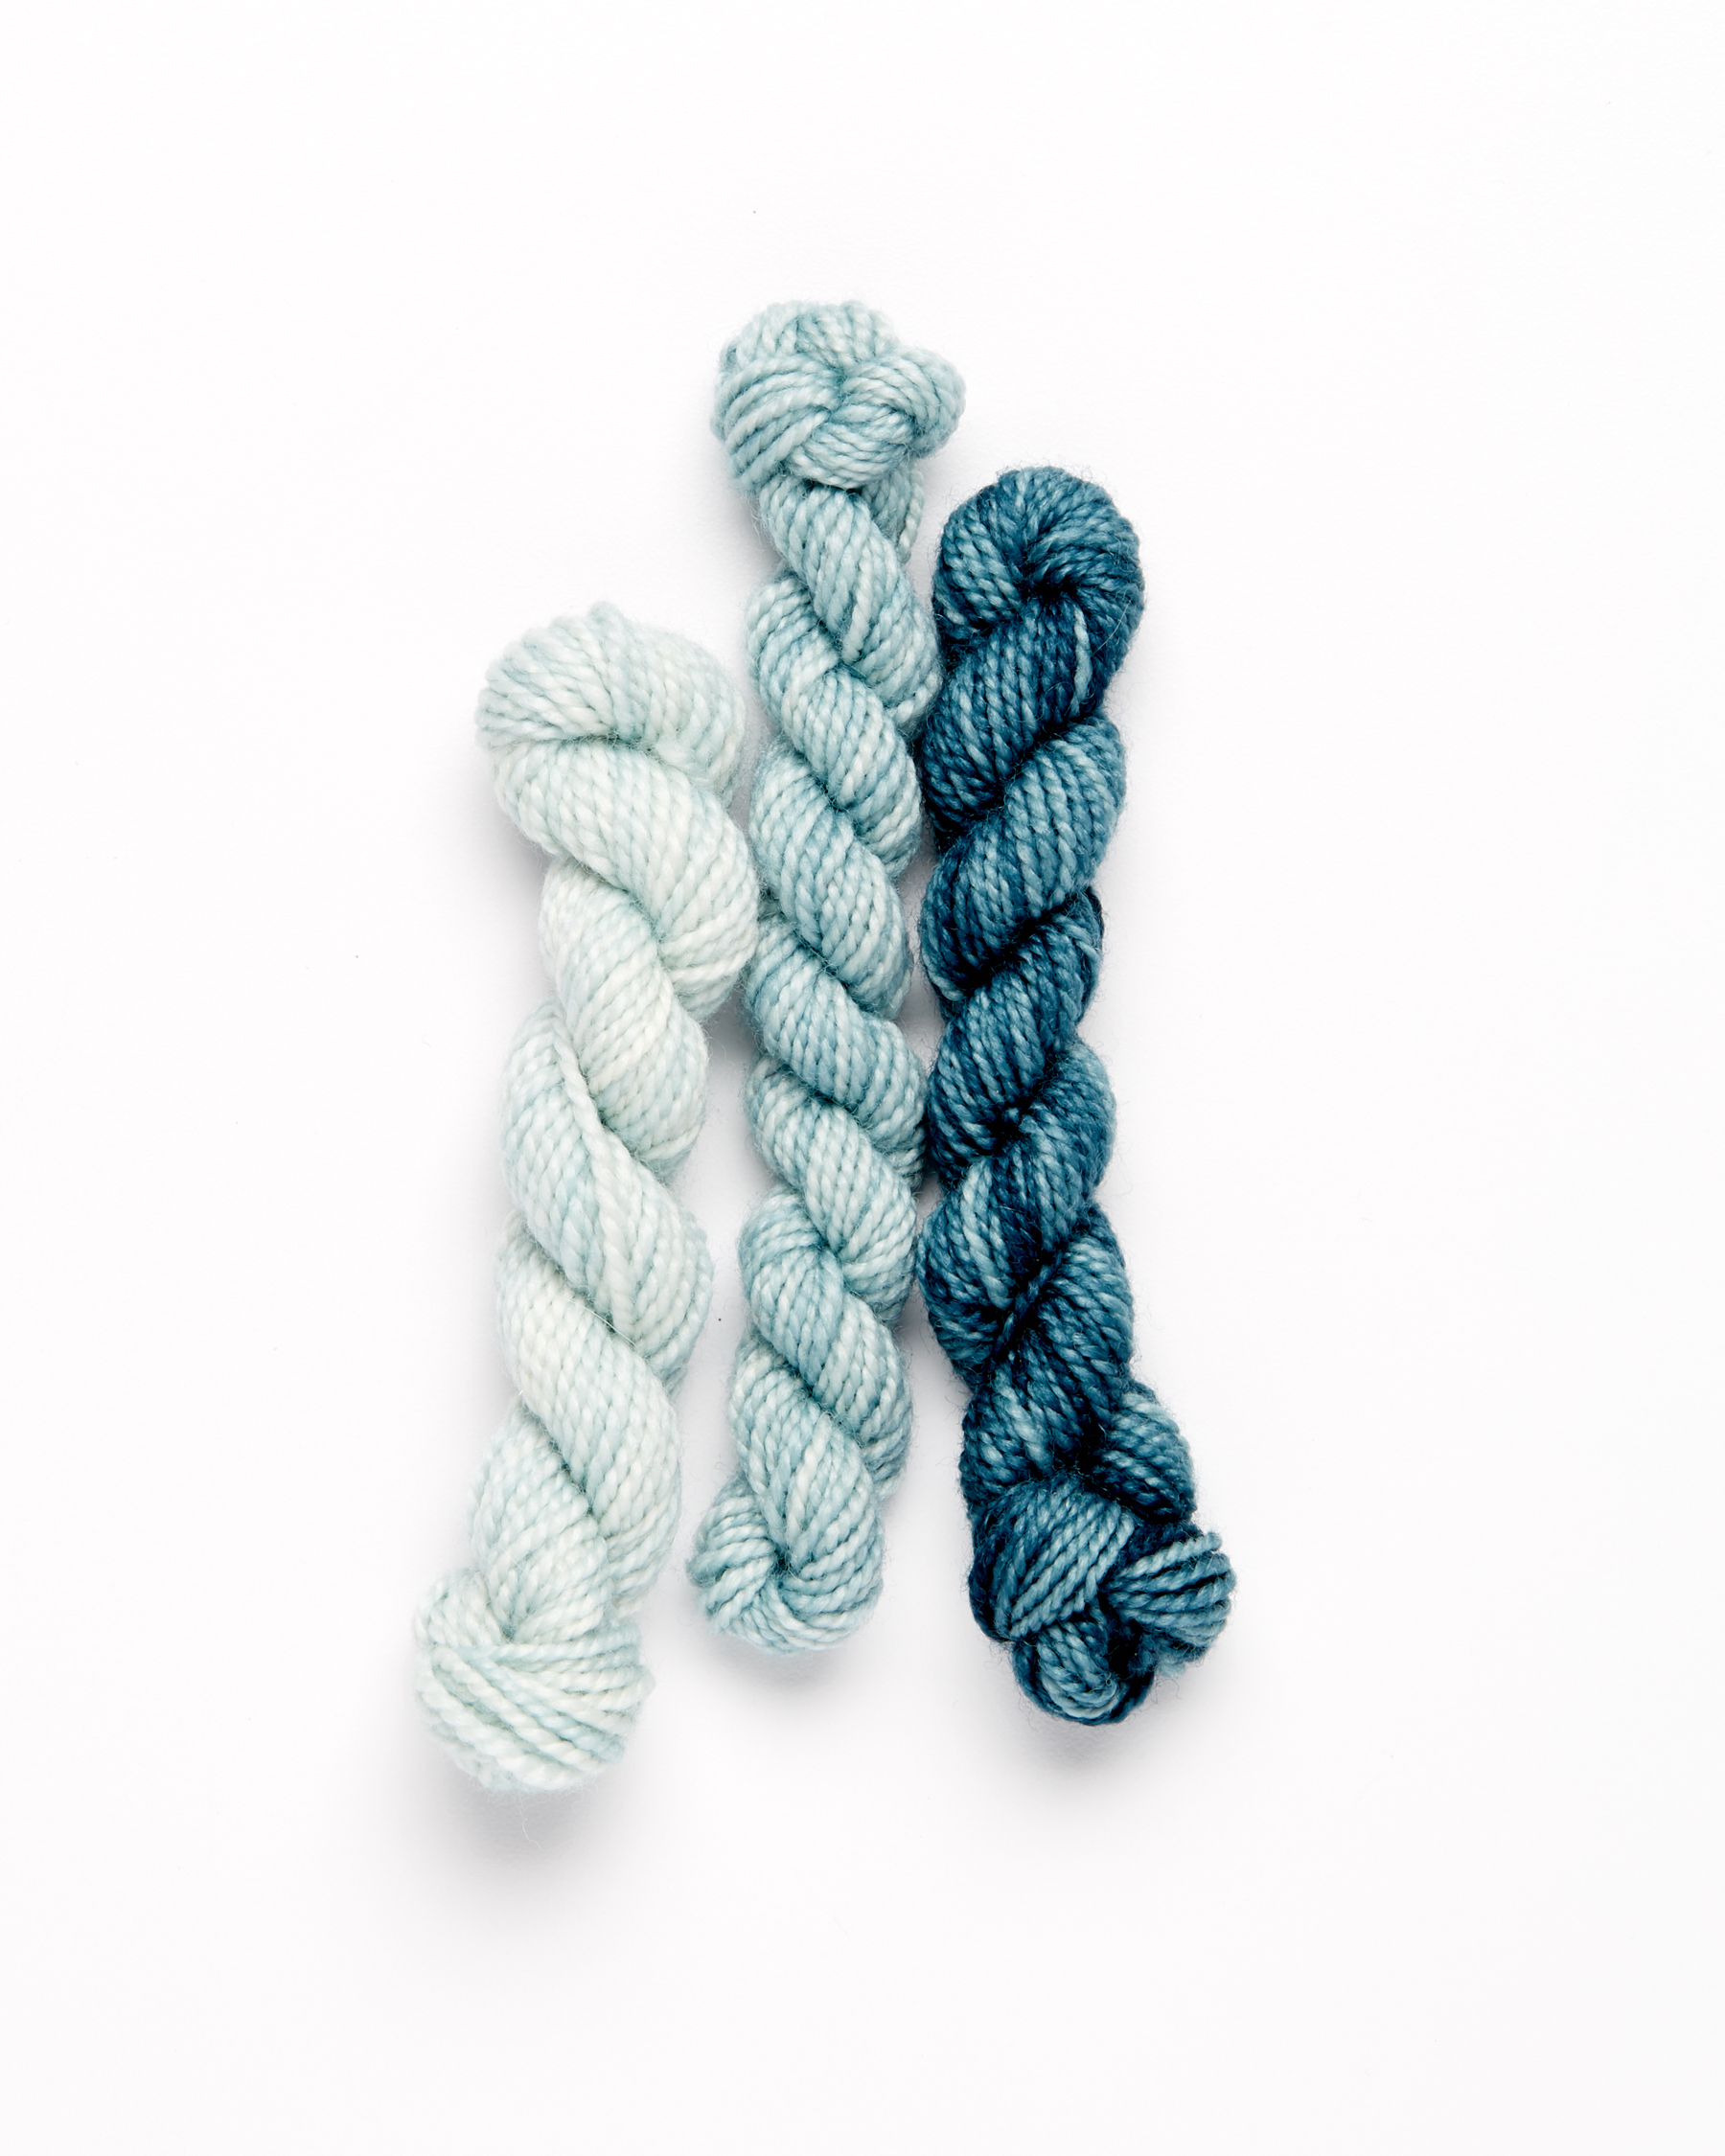 blue embroidery wool yarn against a white background